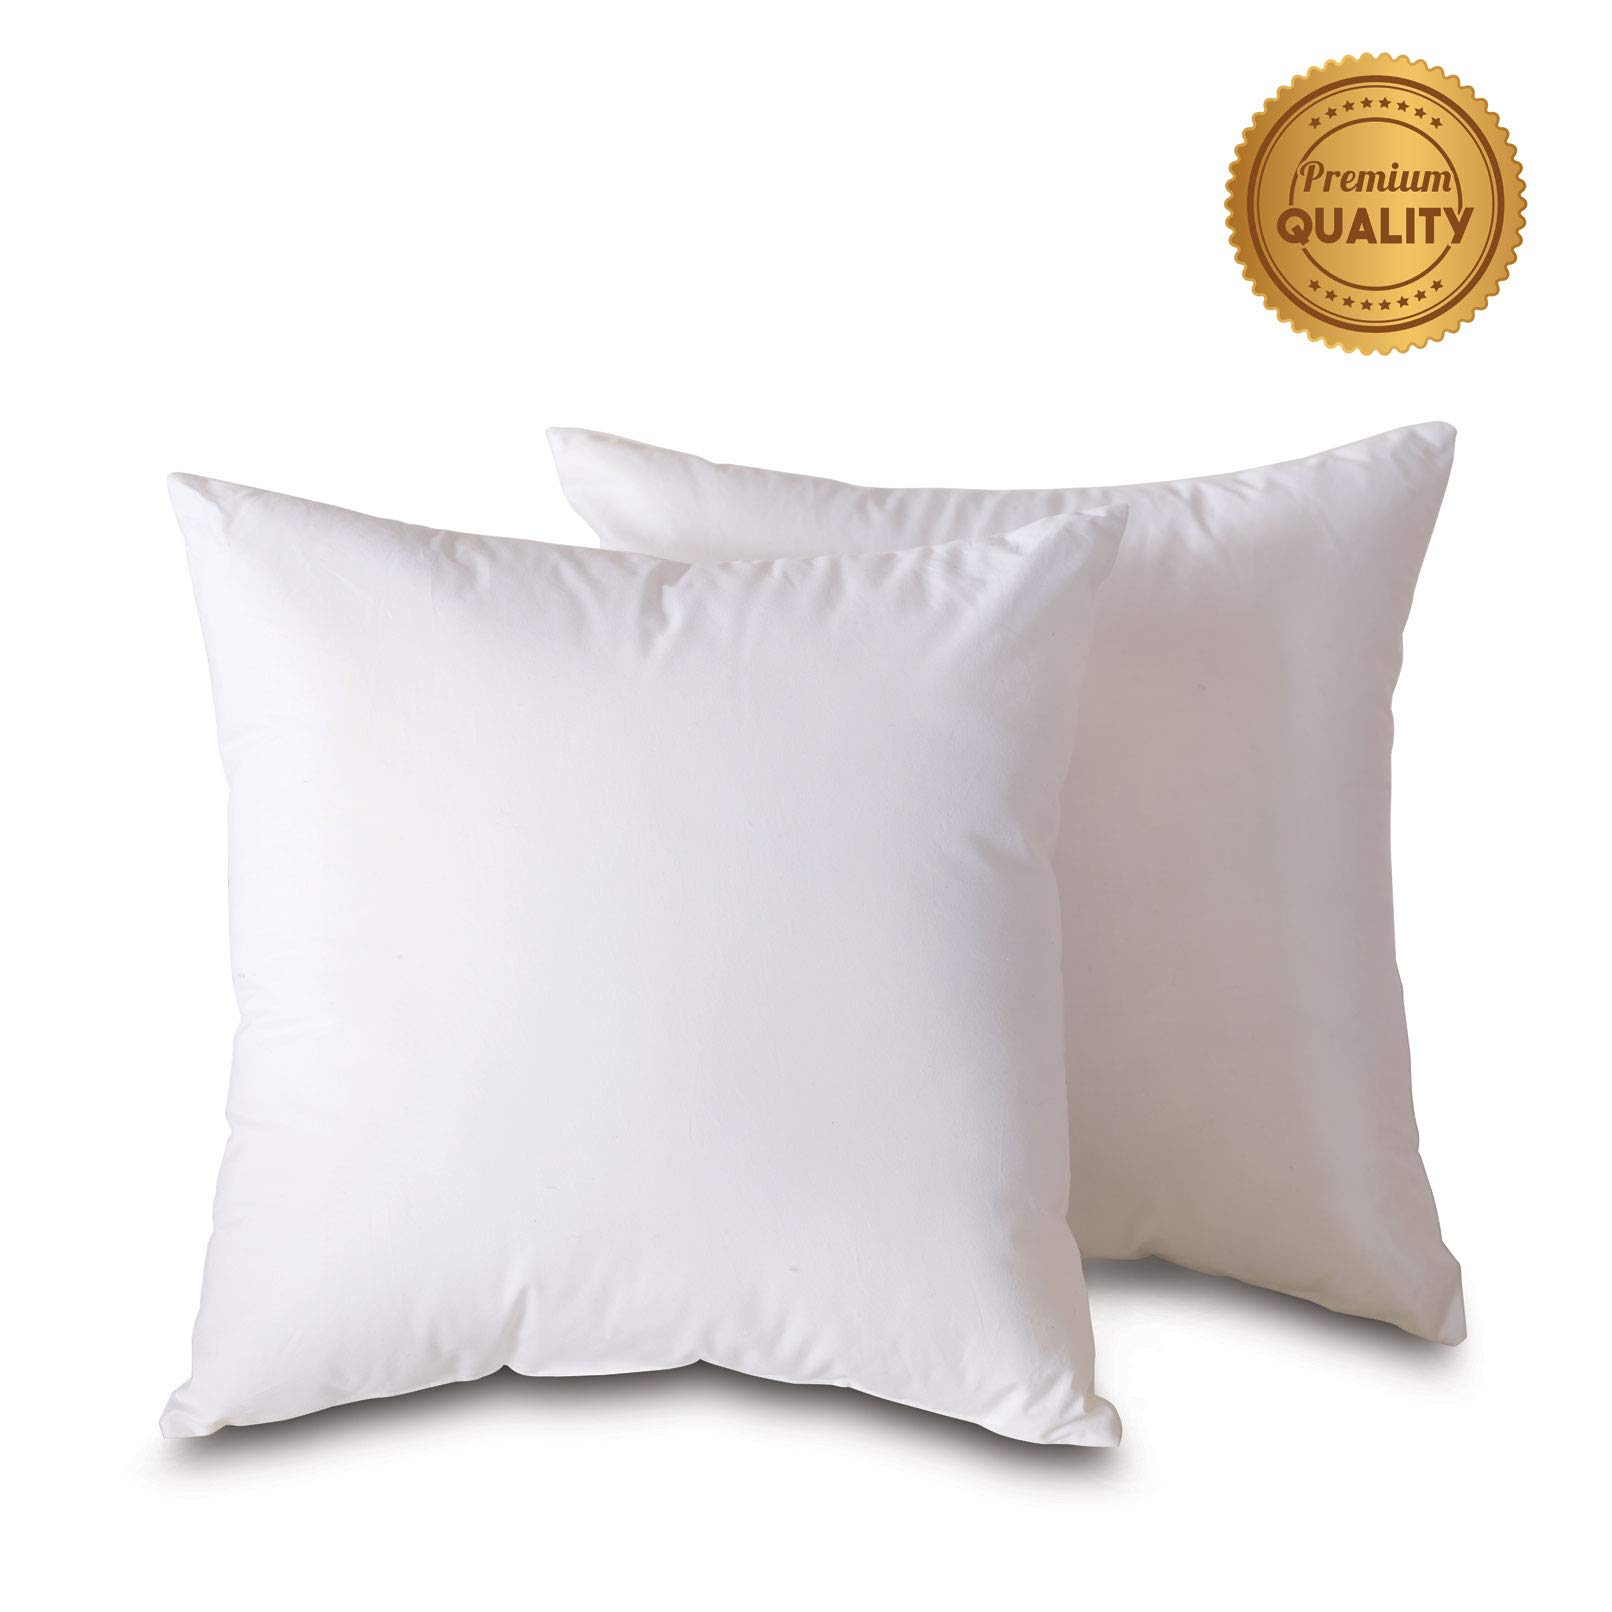 Plankroad Home Décor 27x27 Hypoallergenic Luxury 100% Small Feather Square Euro Pillow Insert, 100% Cambric Cotton Shell, Never Vacuum-Packed, Odorless, Made in USA, Set of 2